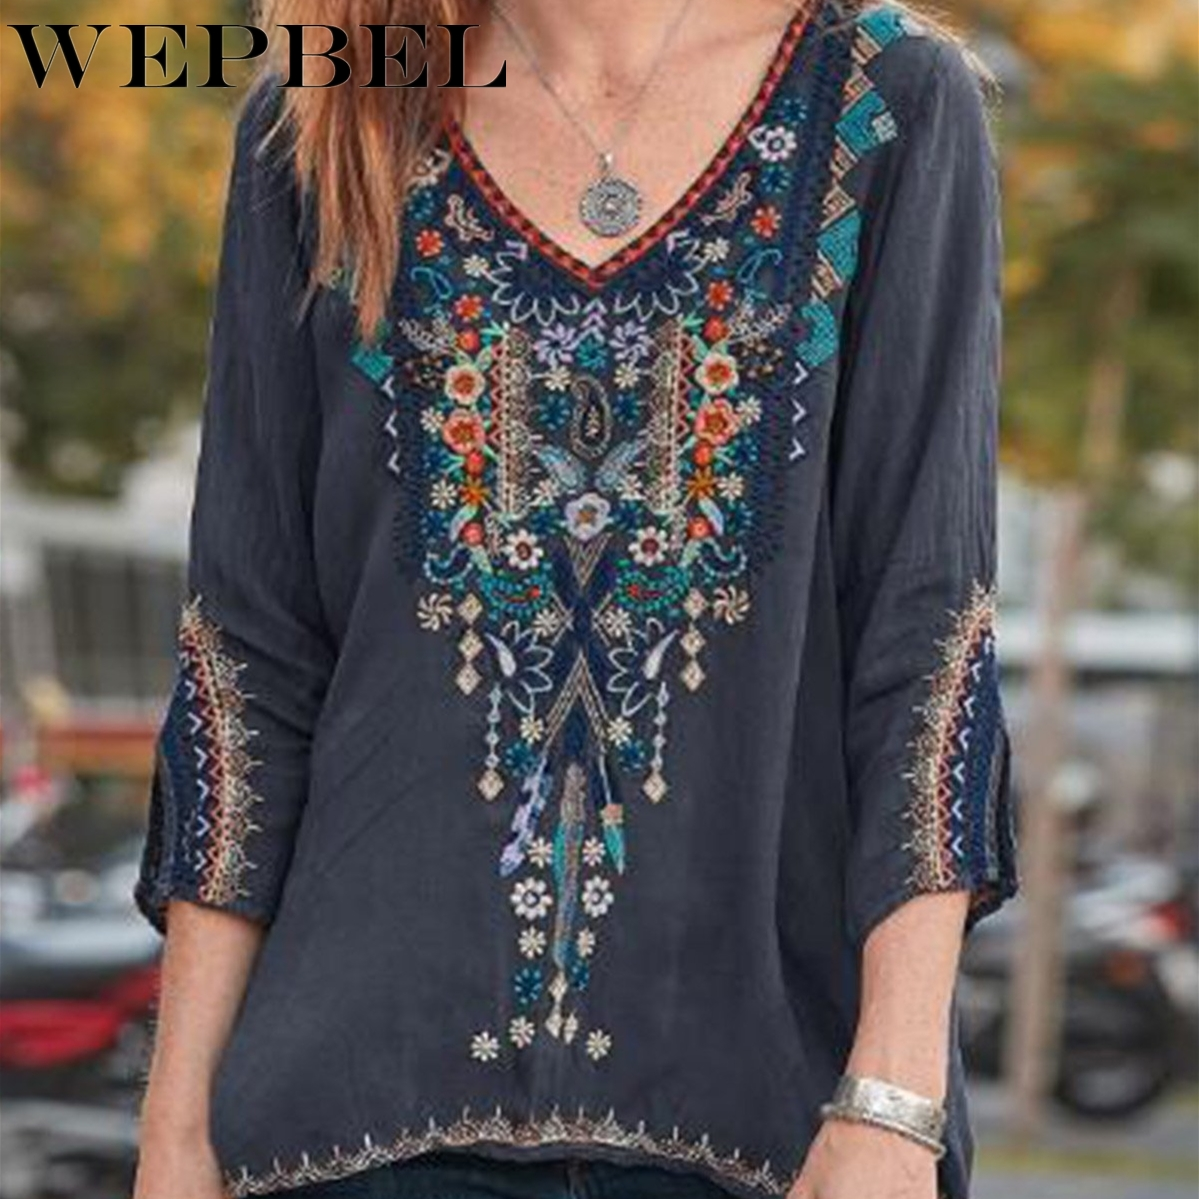 Wepbel Women Blouses Loose Long Sleeve Plus Size Shirt Fashion Floral Embroidered Tops Plus Size Women Clothing Streetwear